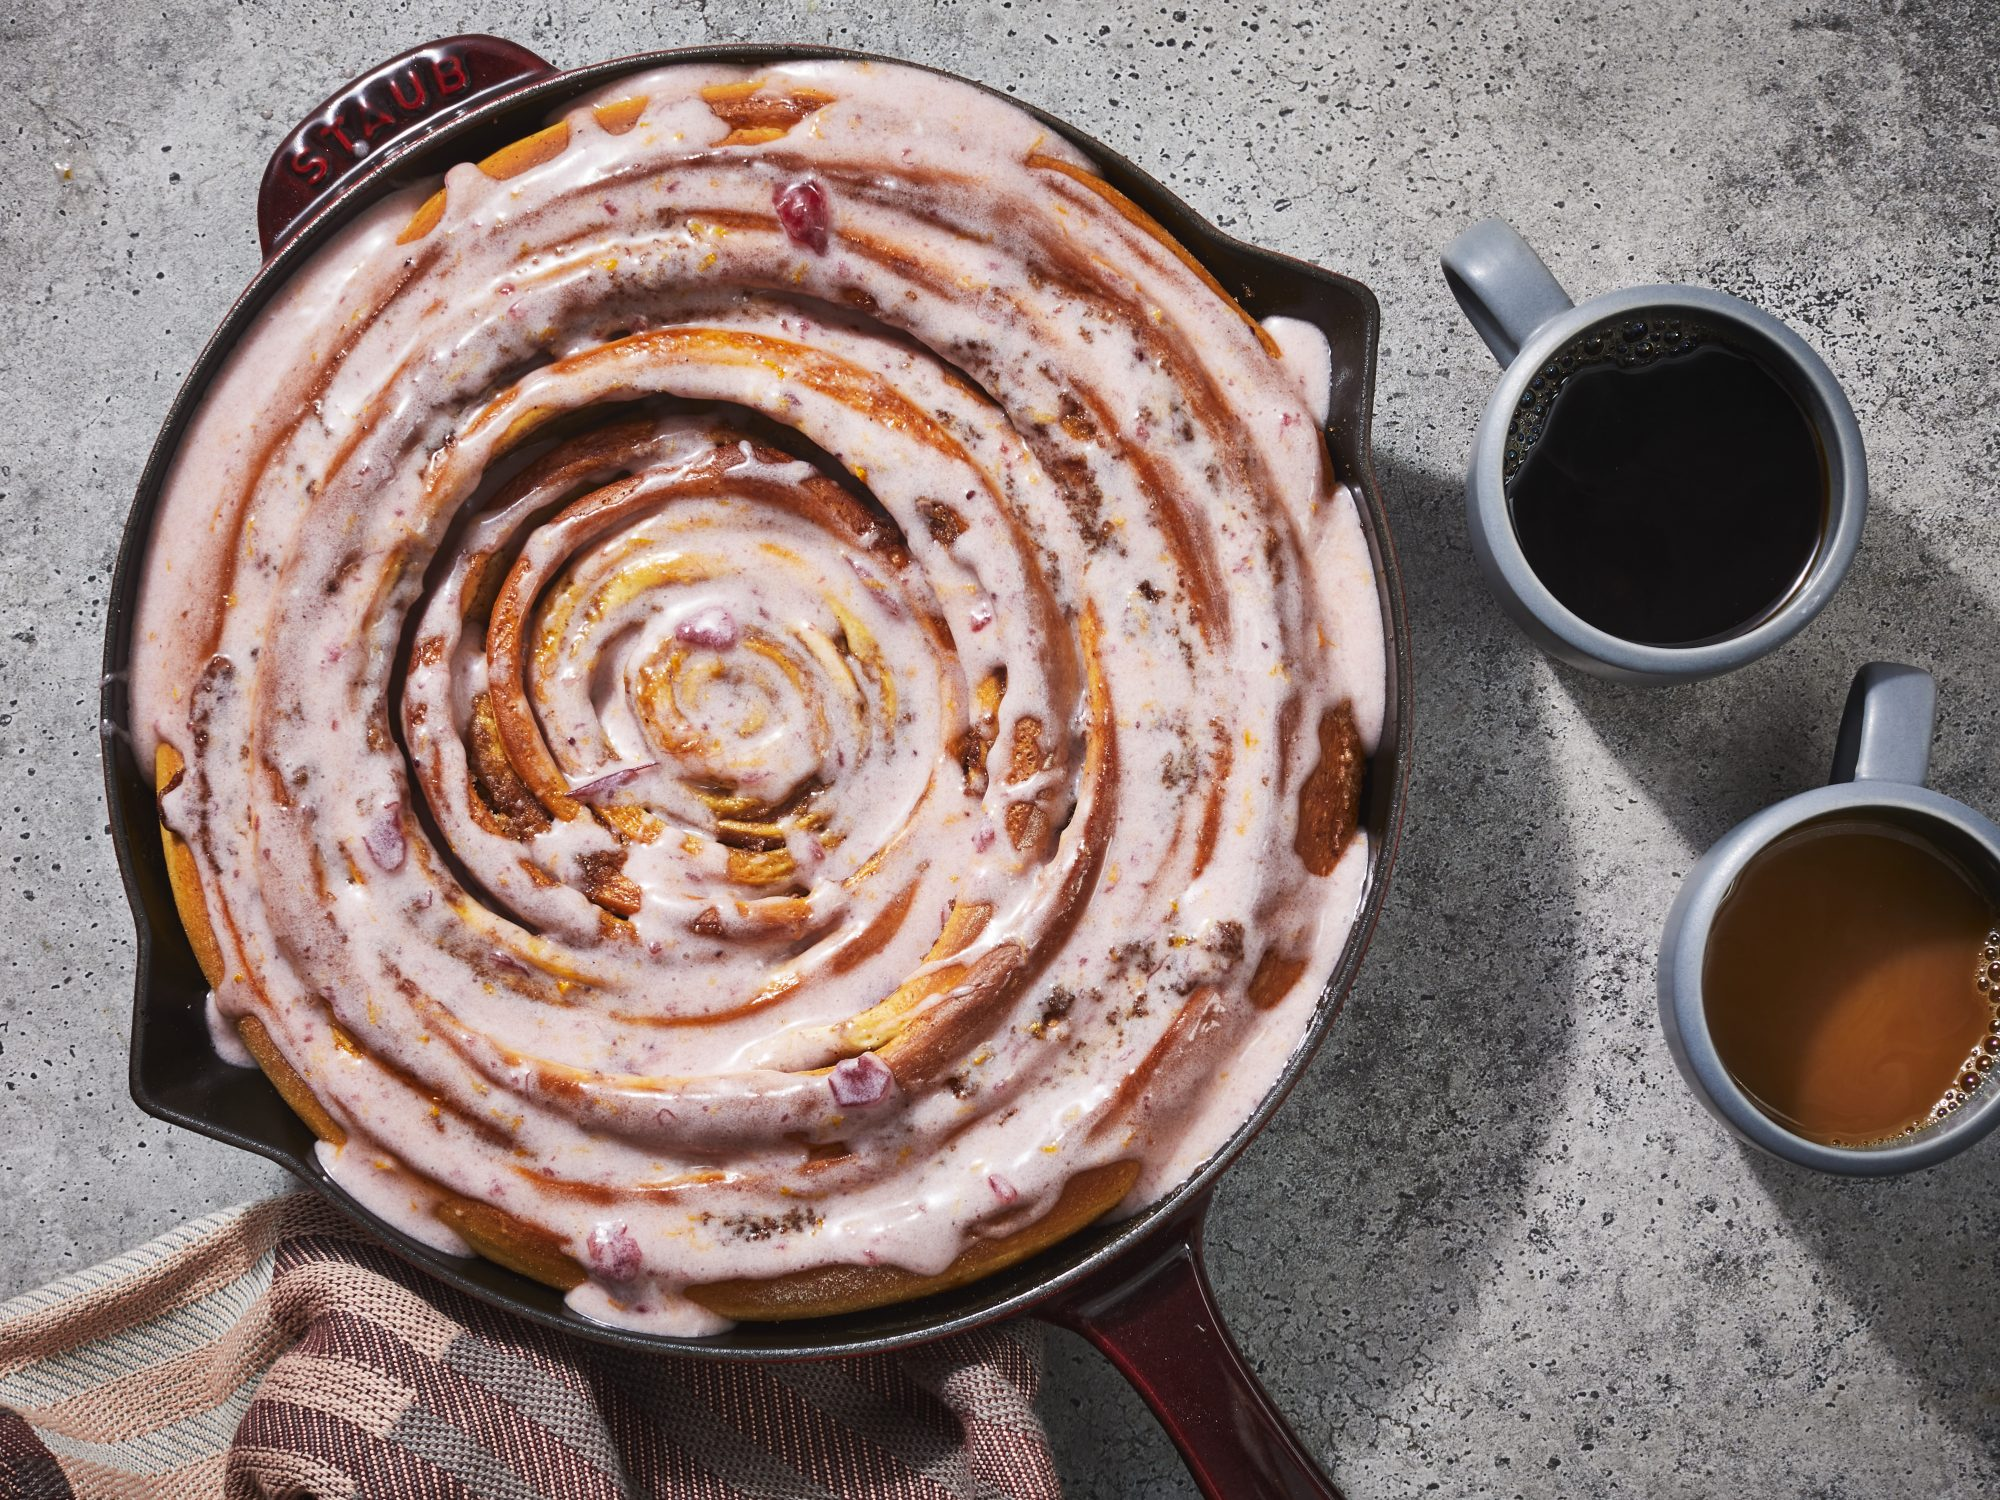 Skillet Cinnamon Roll With Cranberry Glaze